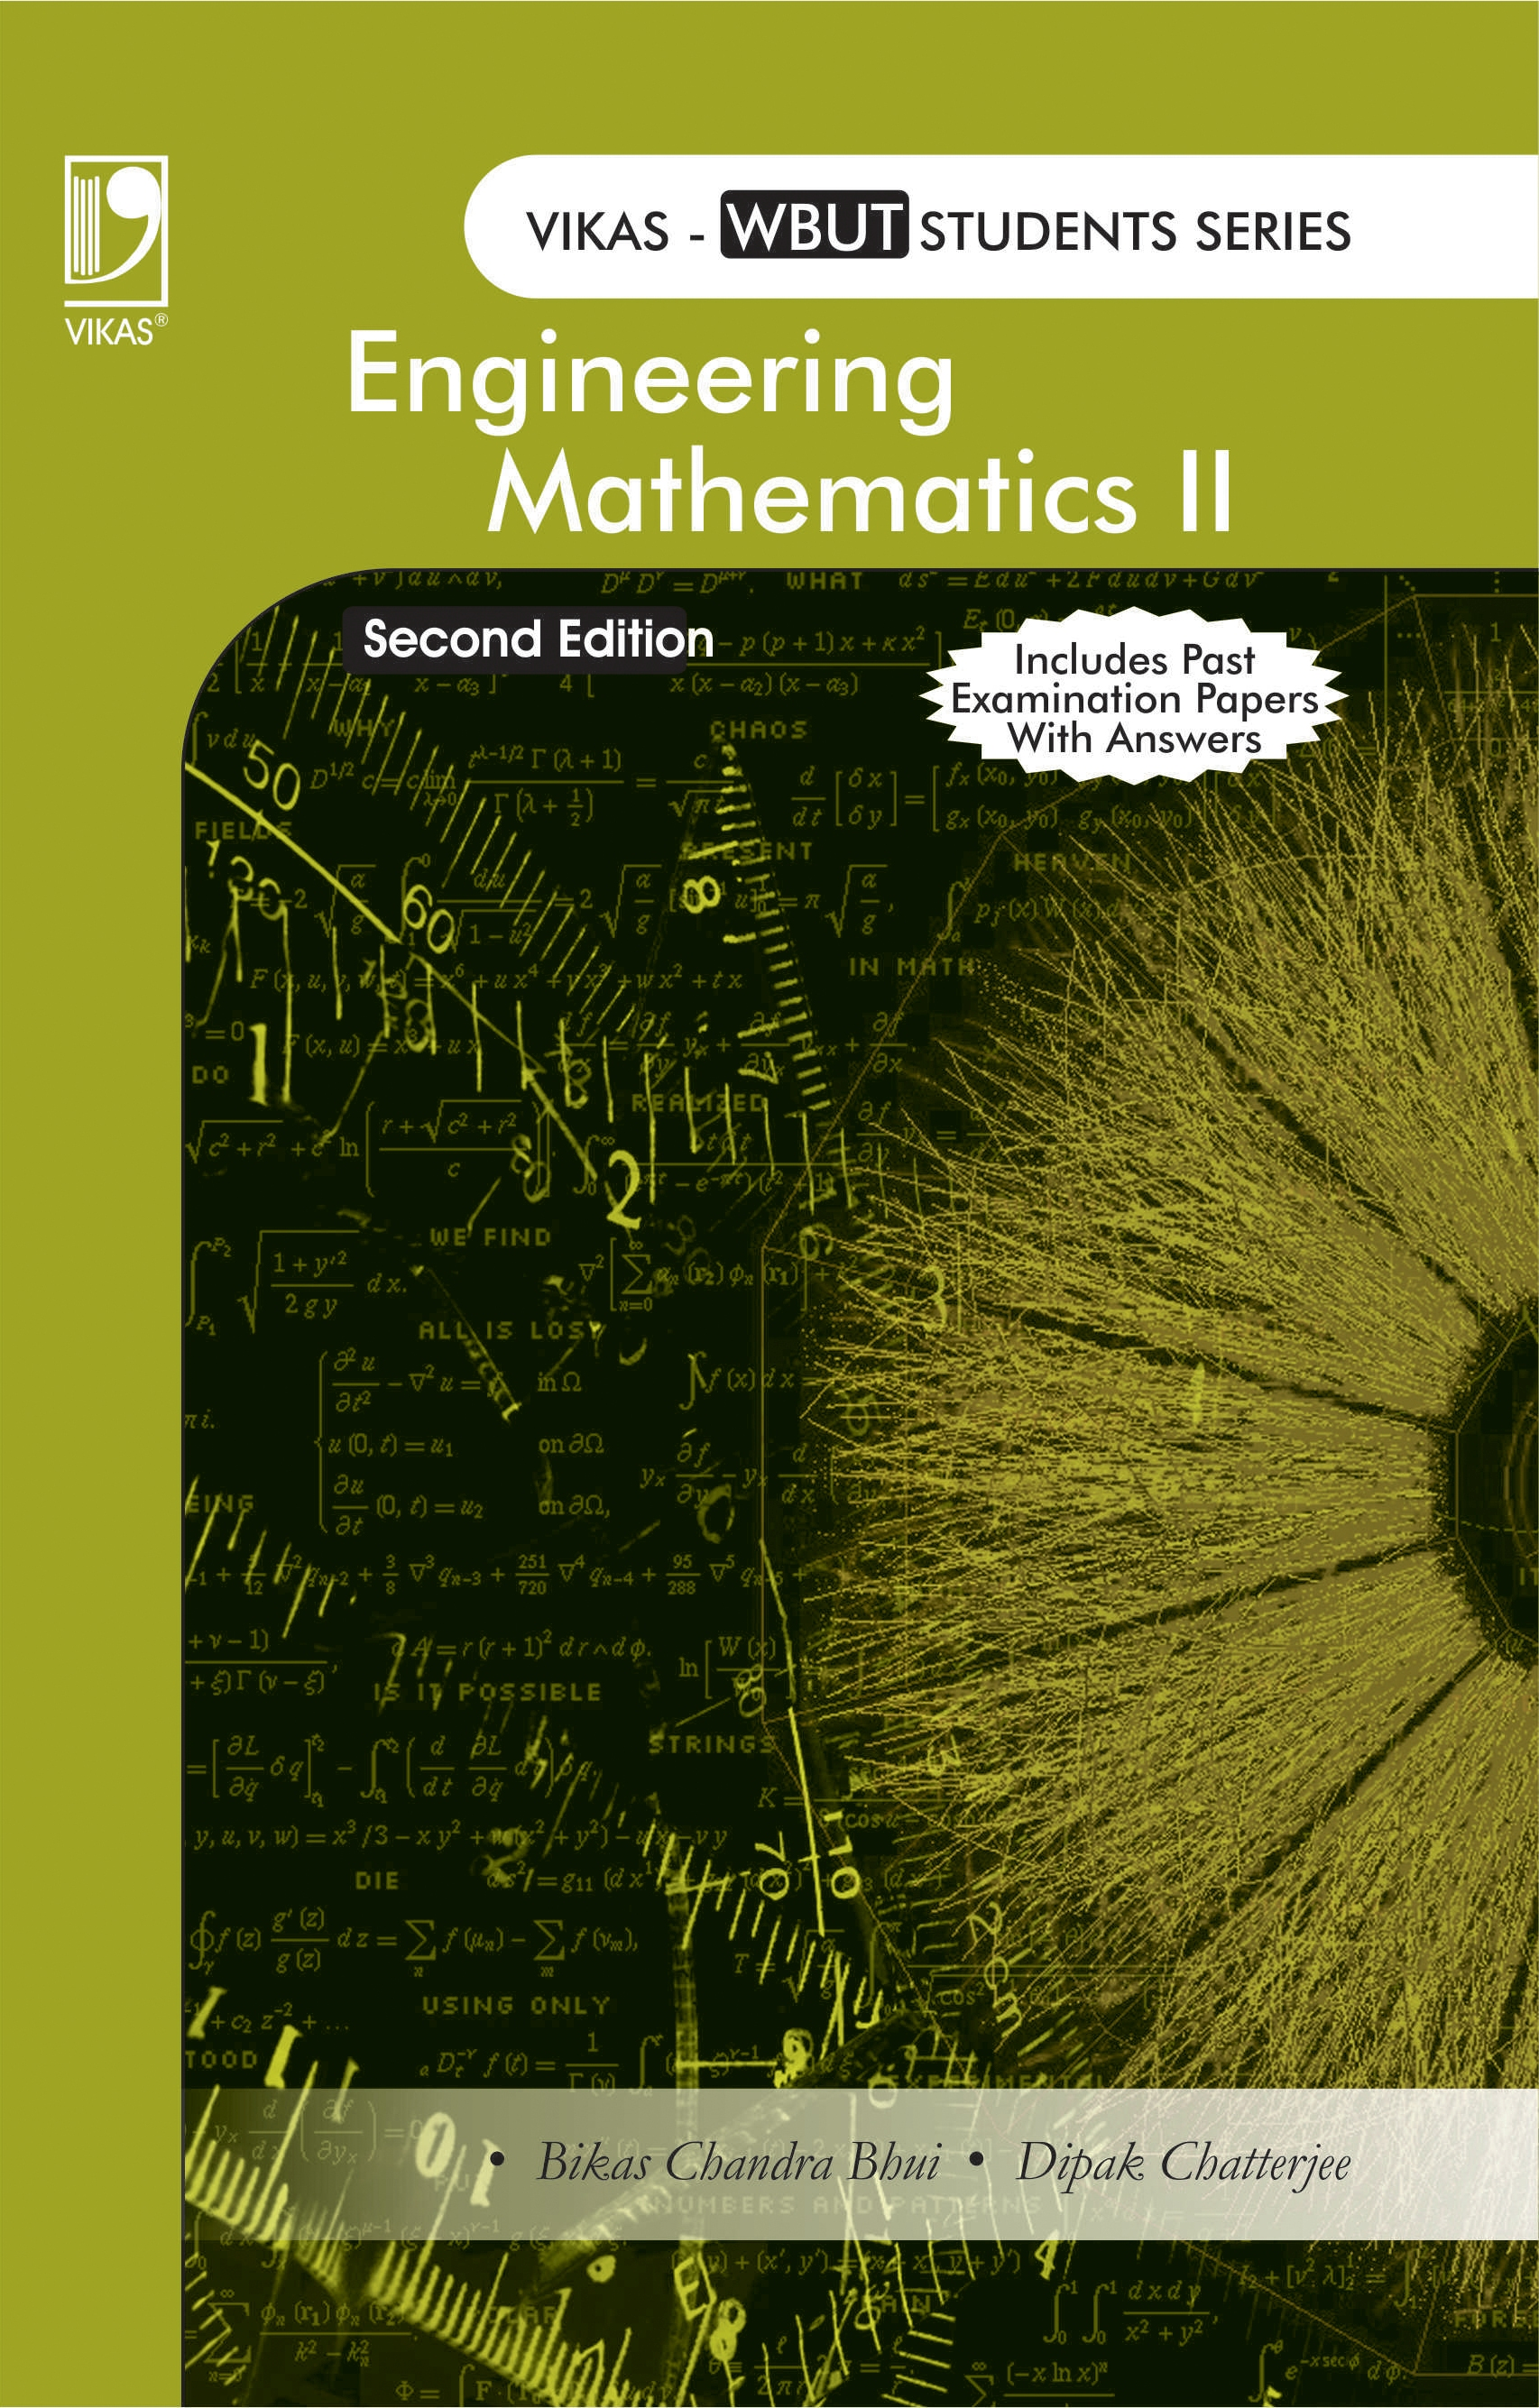 Engineering Mathematics Vol 2 (WBUT), 2/e